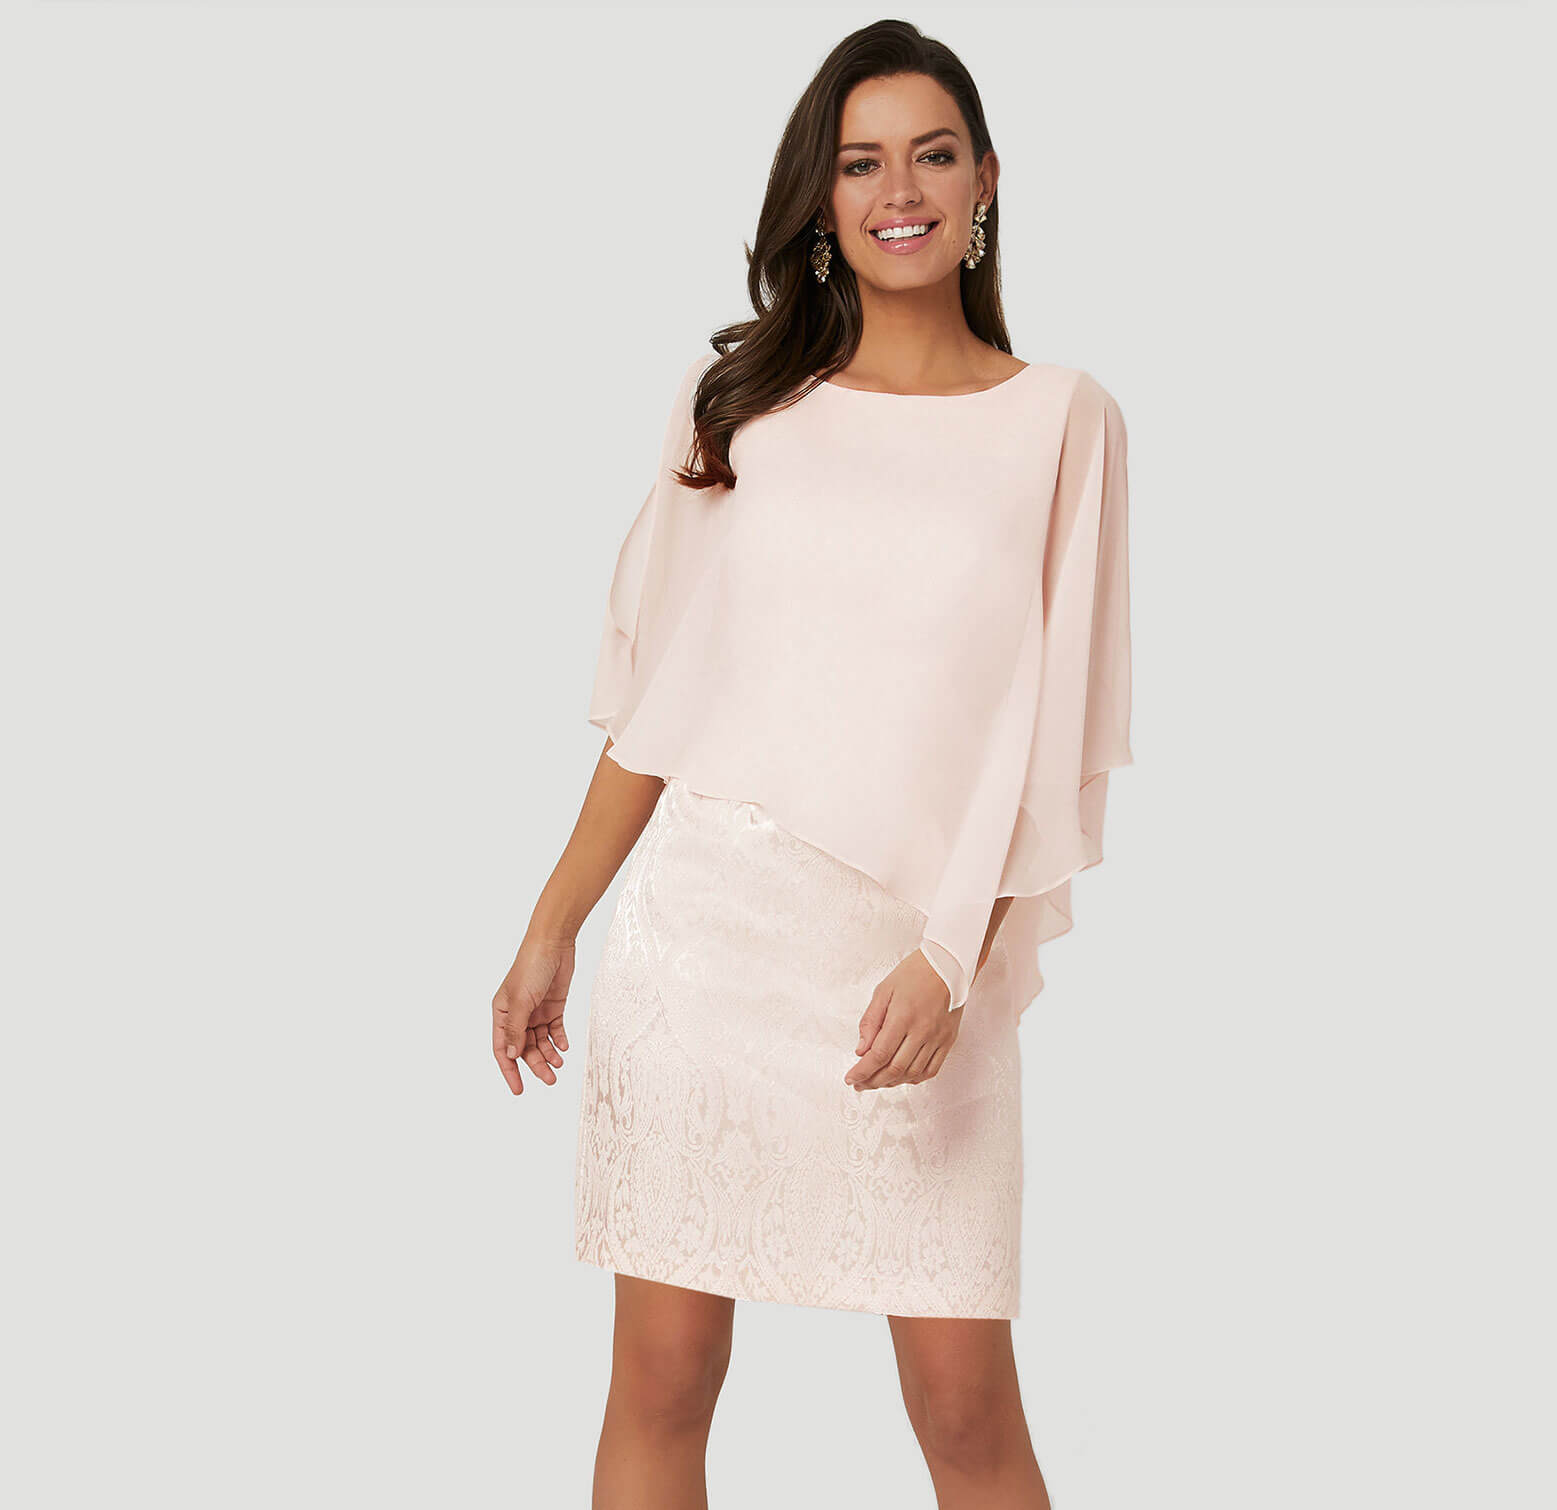 fe394602376 Women s Clothing to Fit Every Size